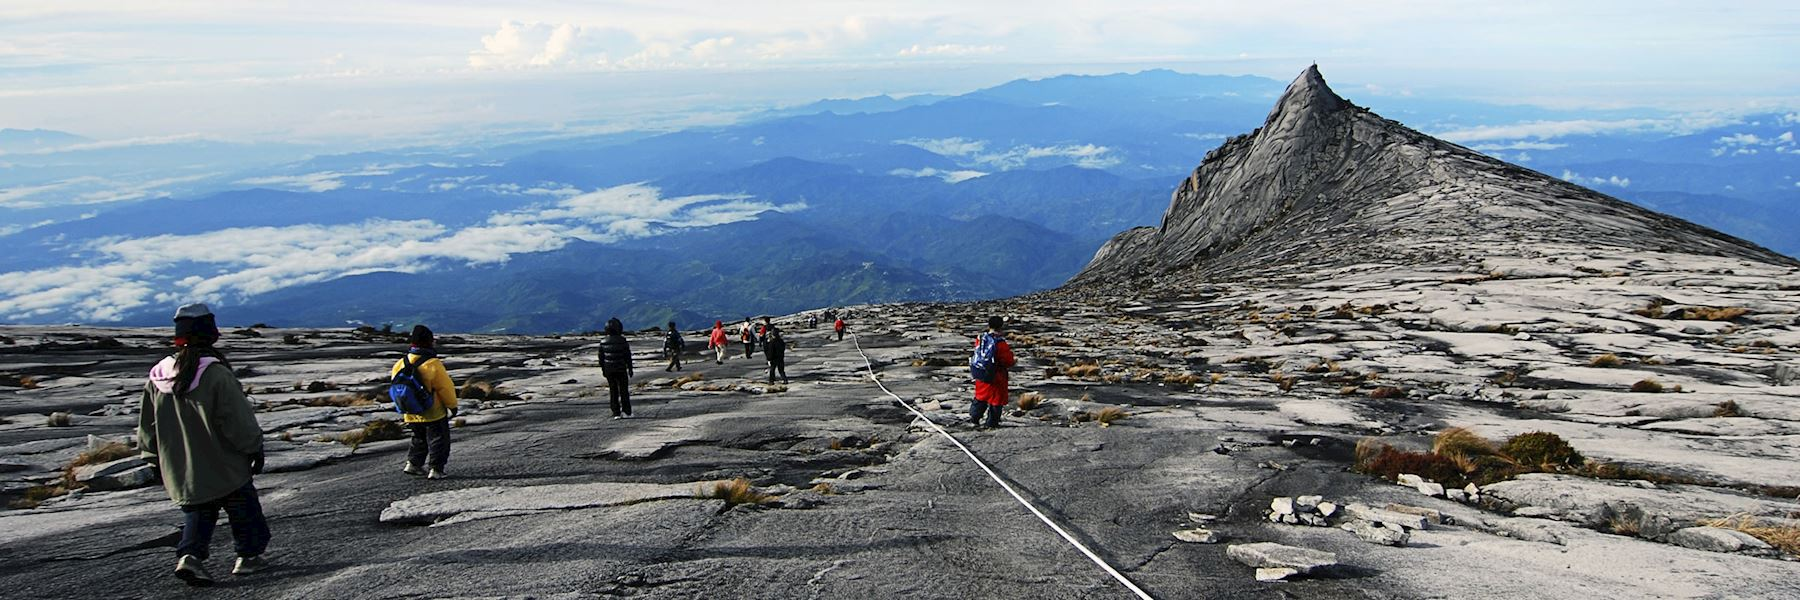 an unforgettable trip to malaysias mount kinabalu The crown jewel of malaysia's landscape, mount kinabalu promises an unforgettable experience to seasoned hikers and newcomers alike.